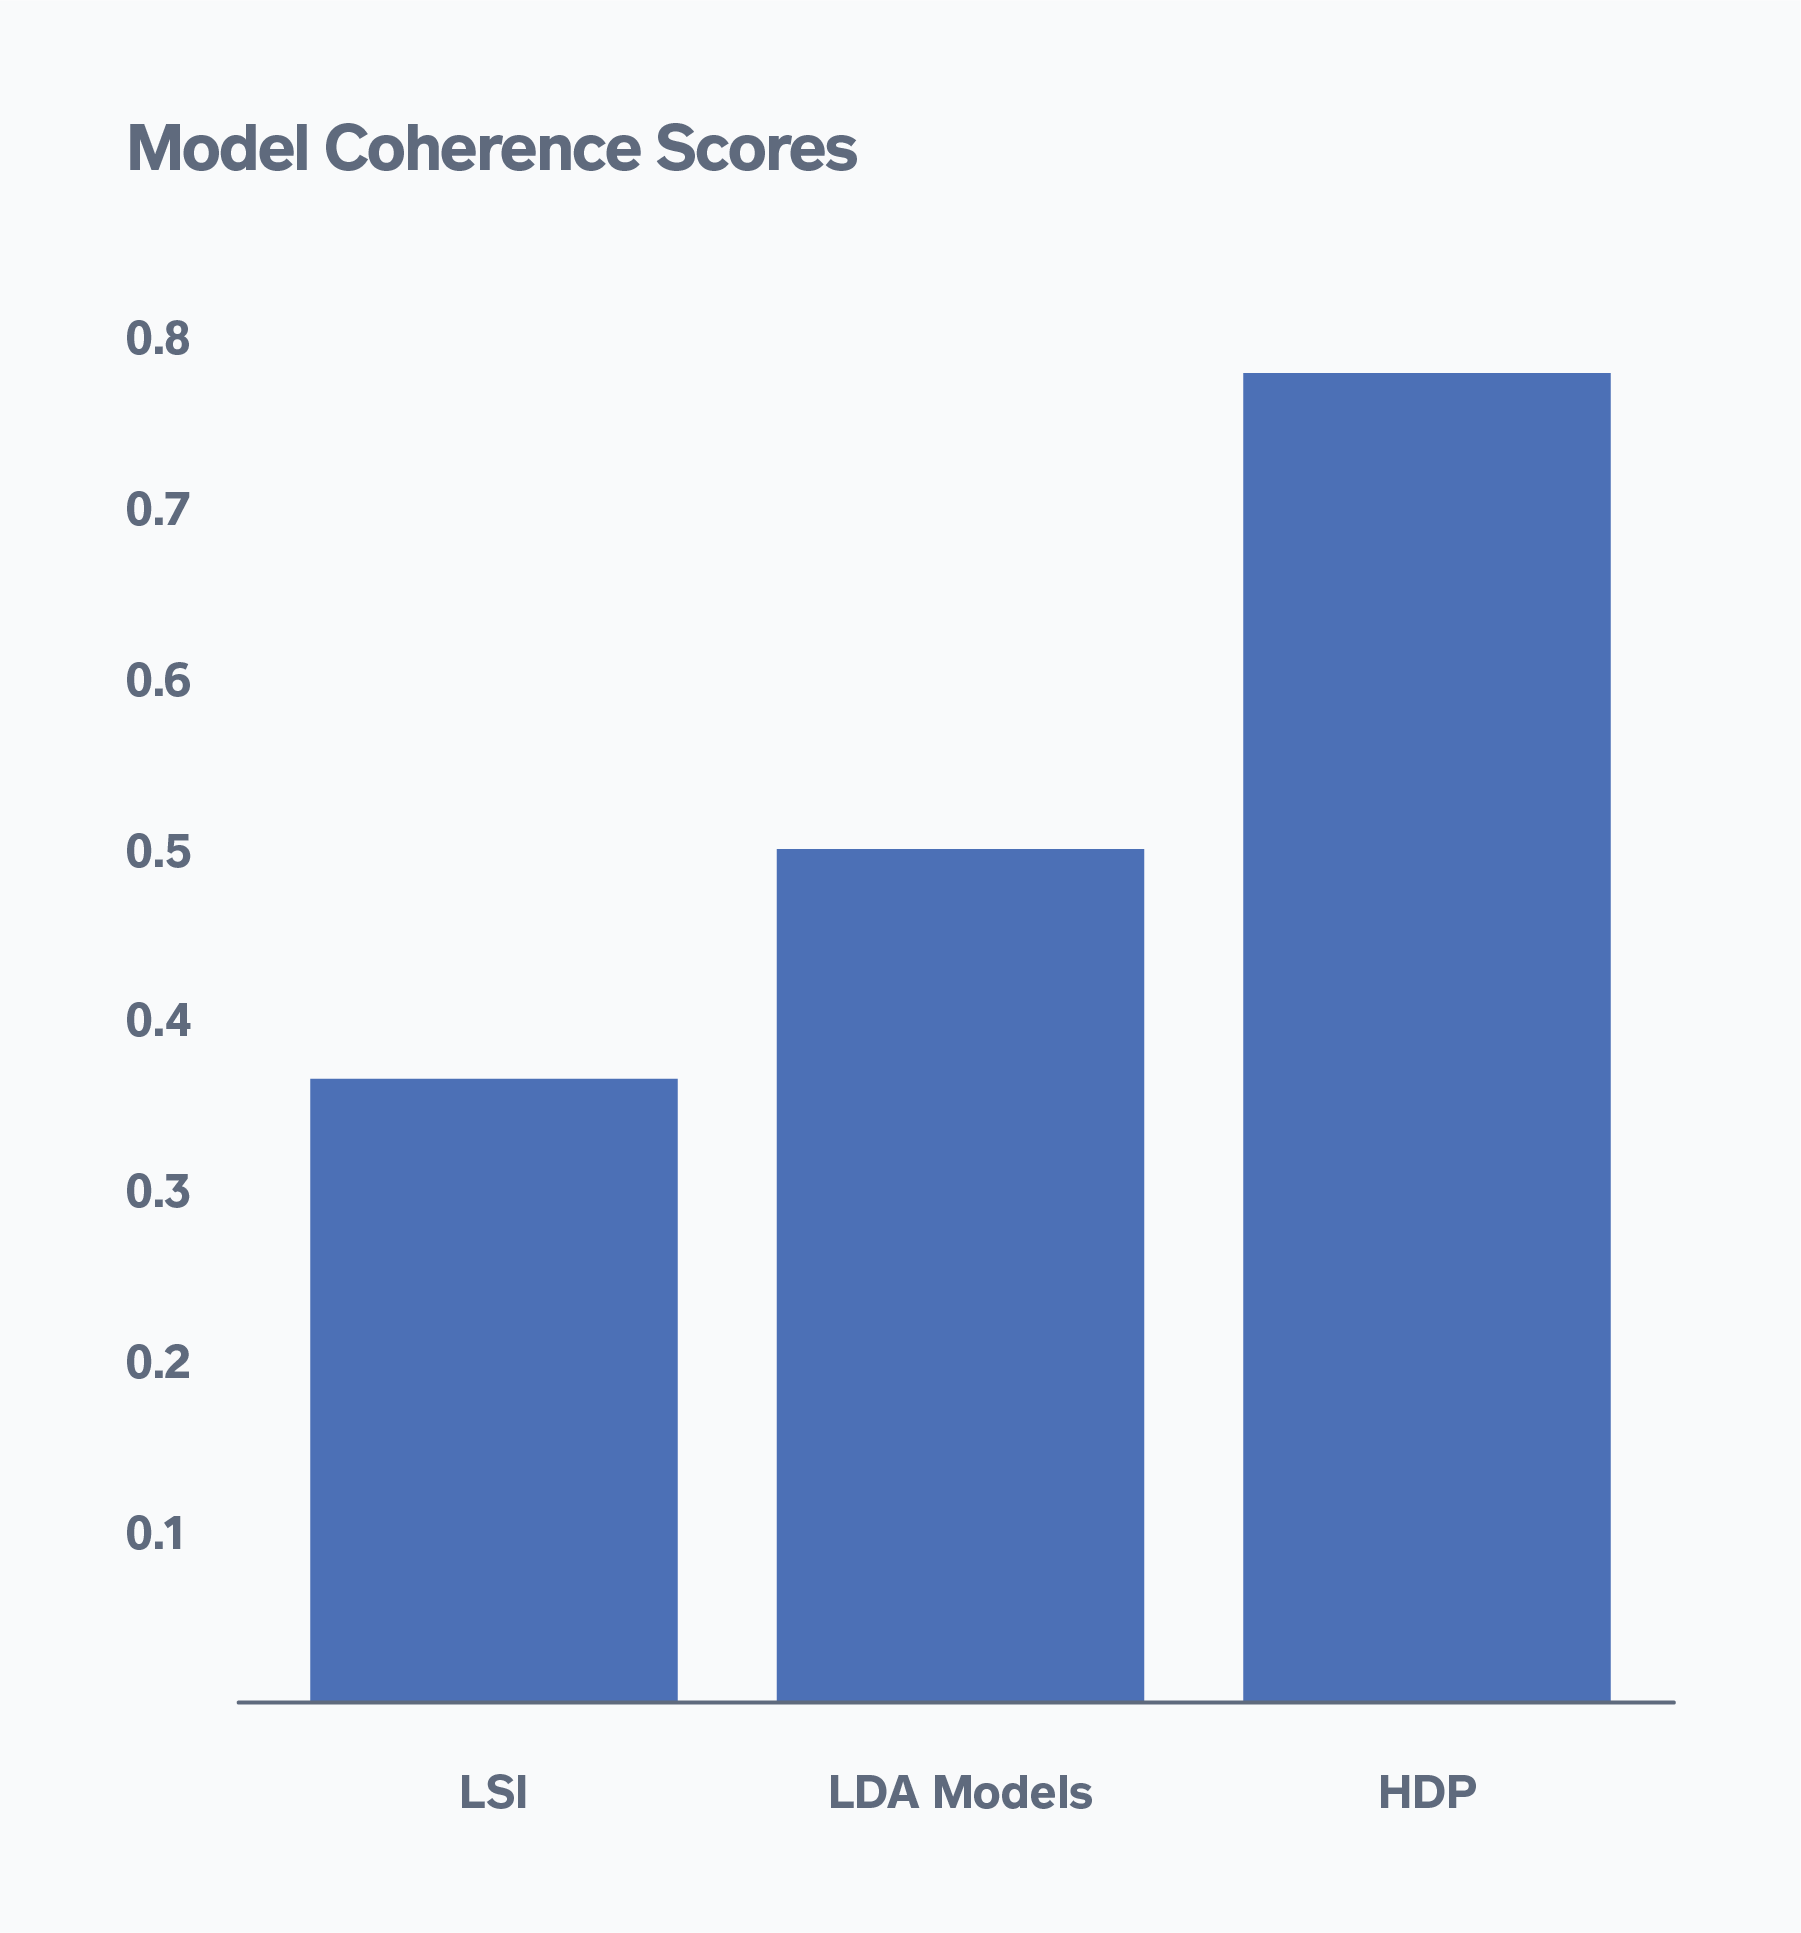 Figure 5: Model Coherence Scores Across Various Topic Models